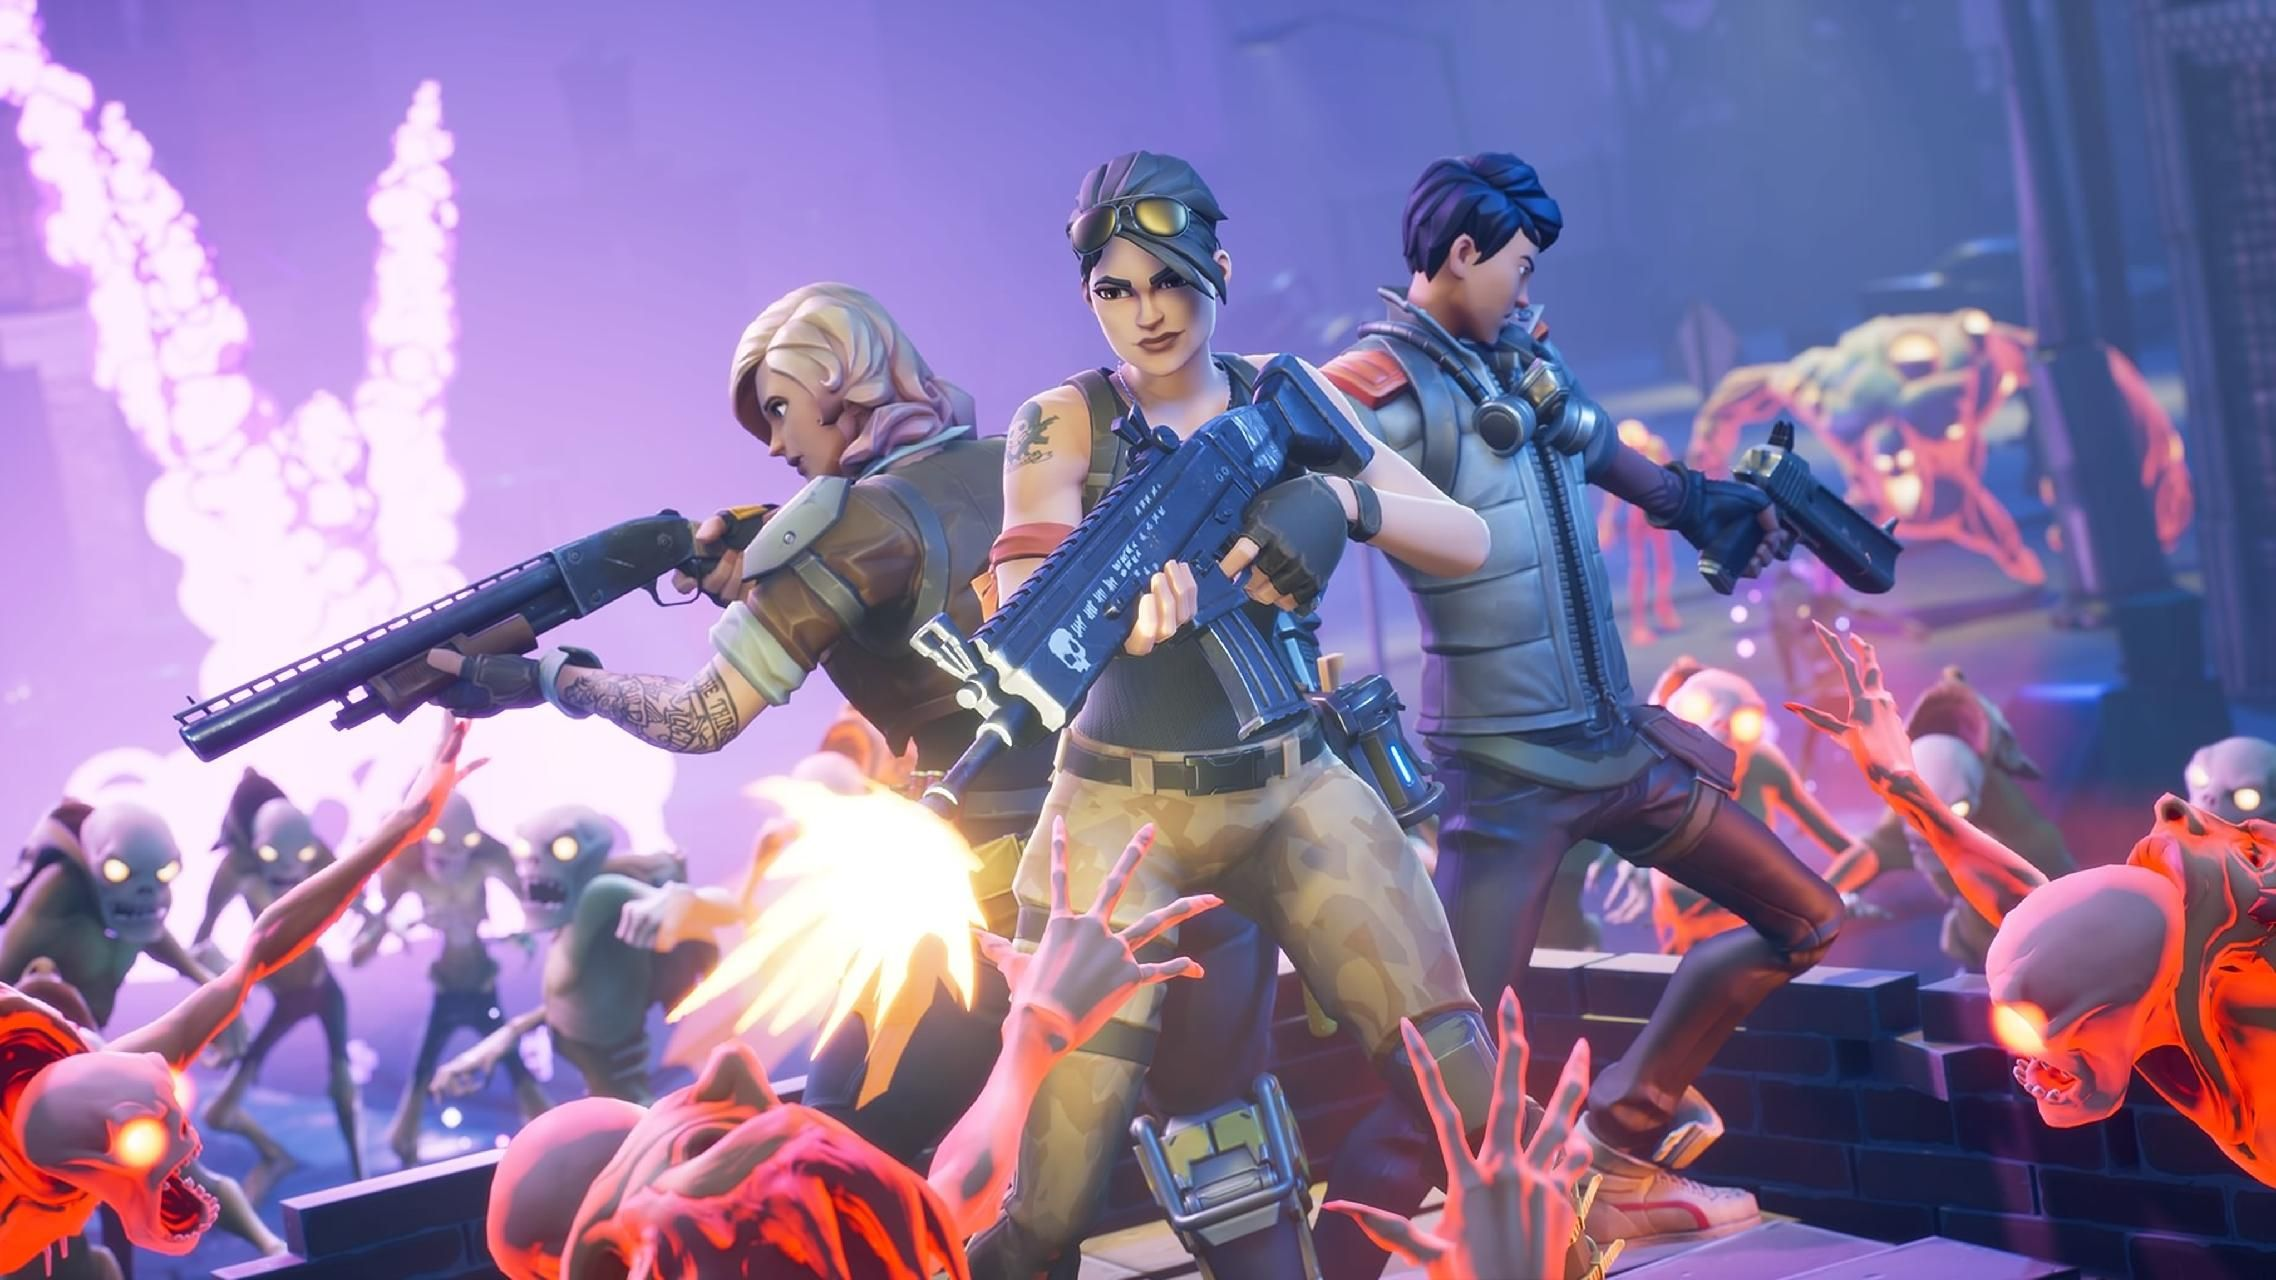 Download Fortnite Squad Wallpaper By Decoderx Gaming 08 Free